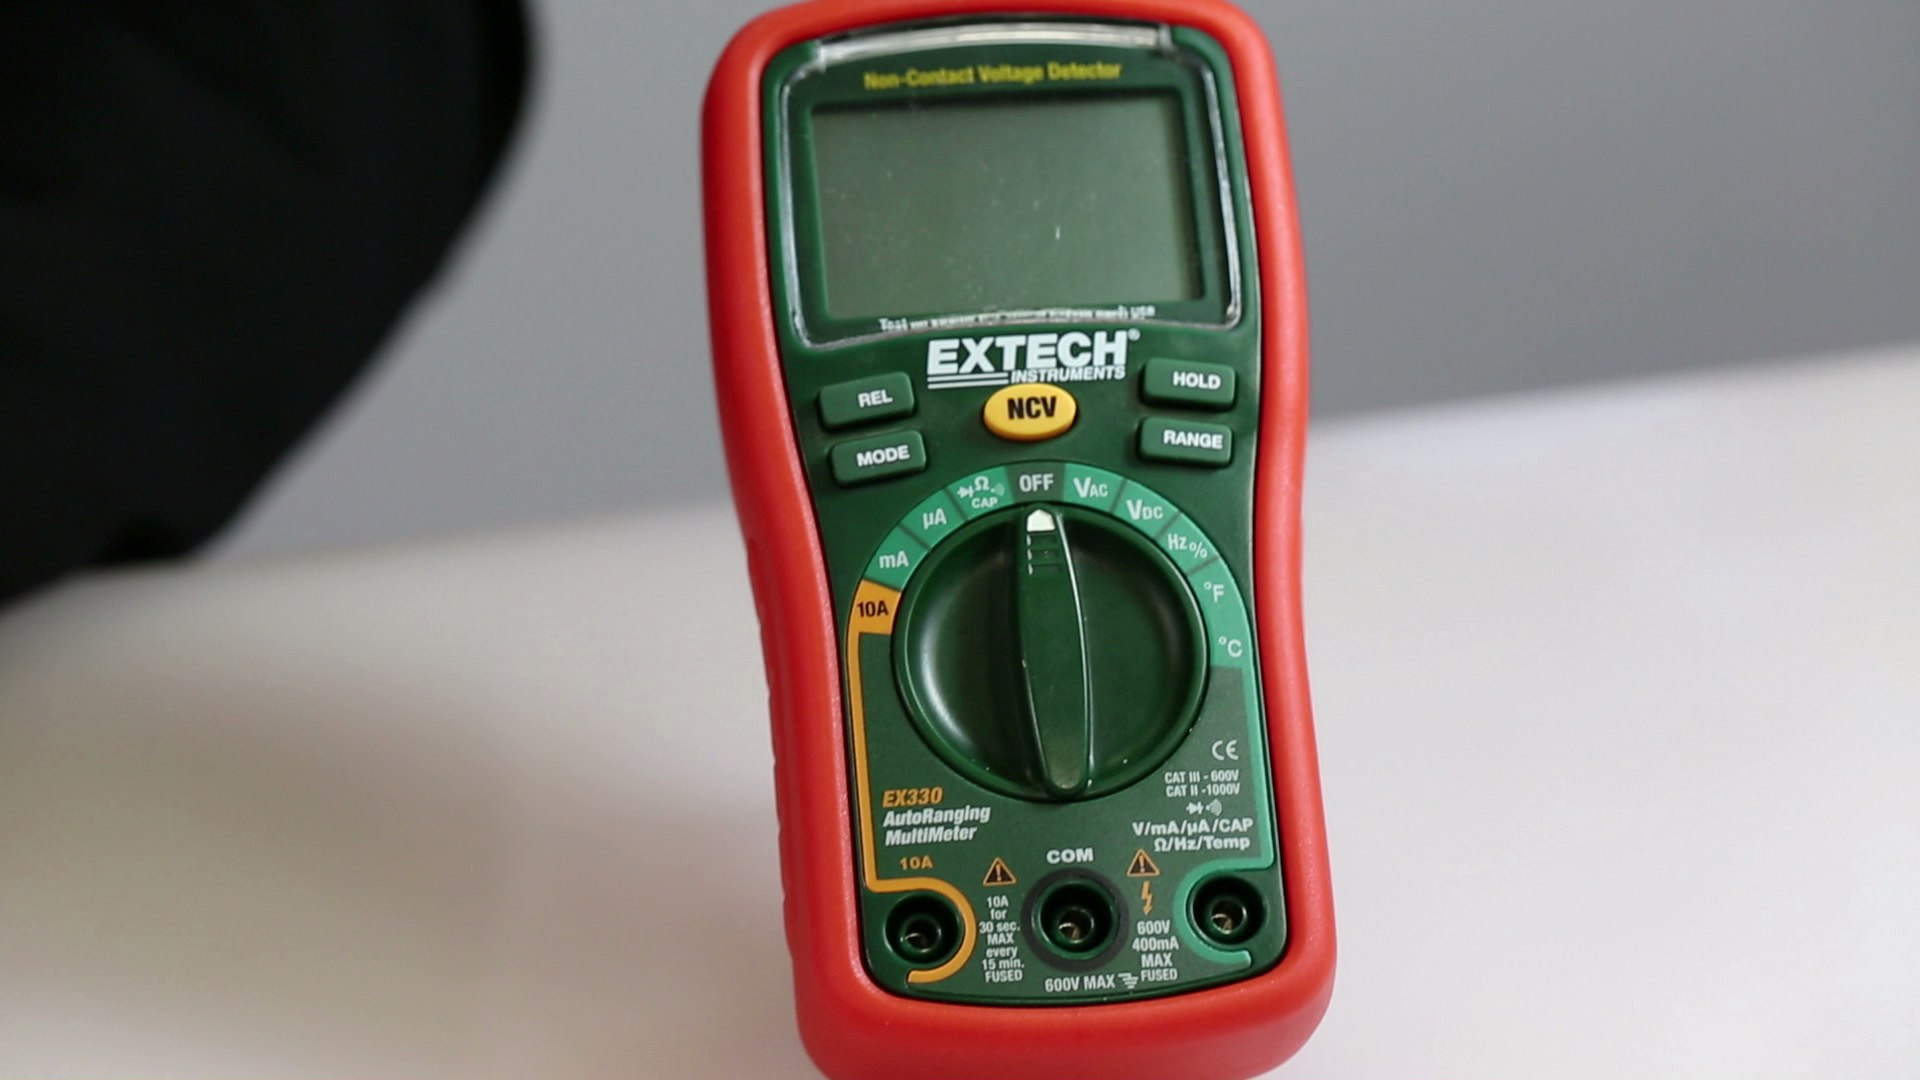 projects_Collin's_Lab_-_Multimeters-4.jpeg